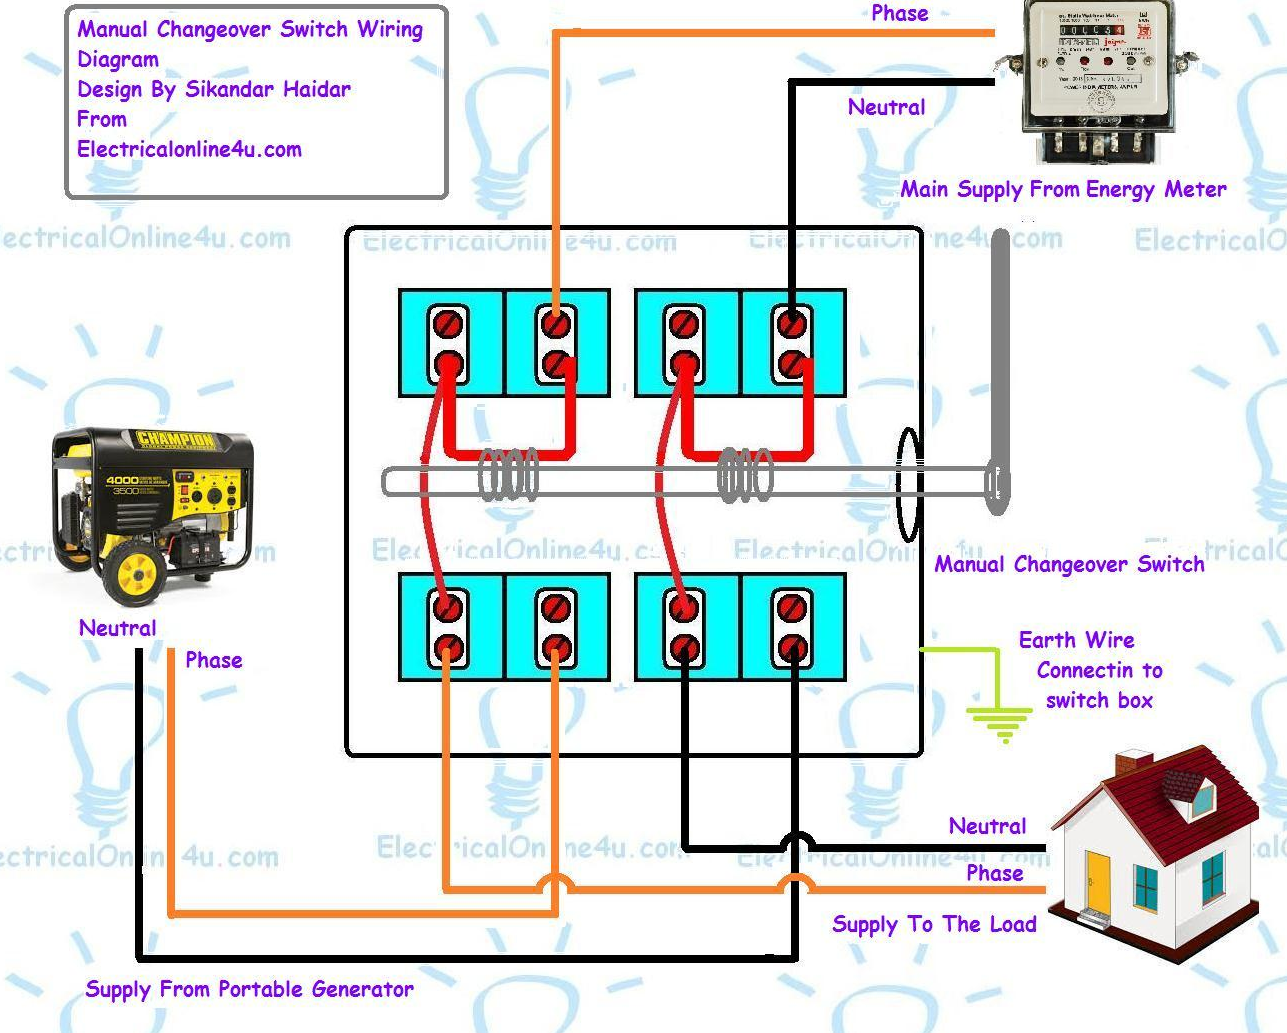 Home Wiring Diagram Maker Basic Guide Home Wiring Diagram Software Images Gallery